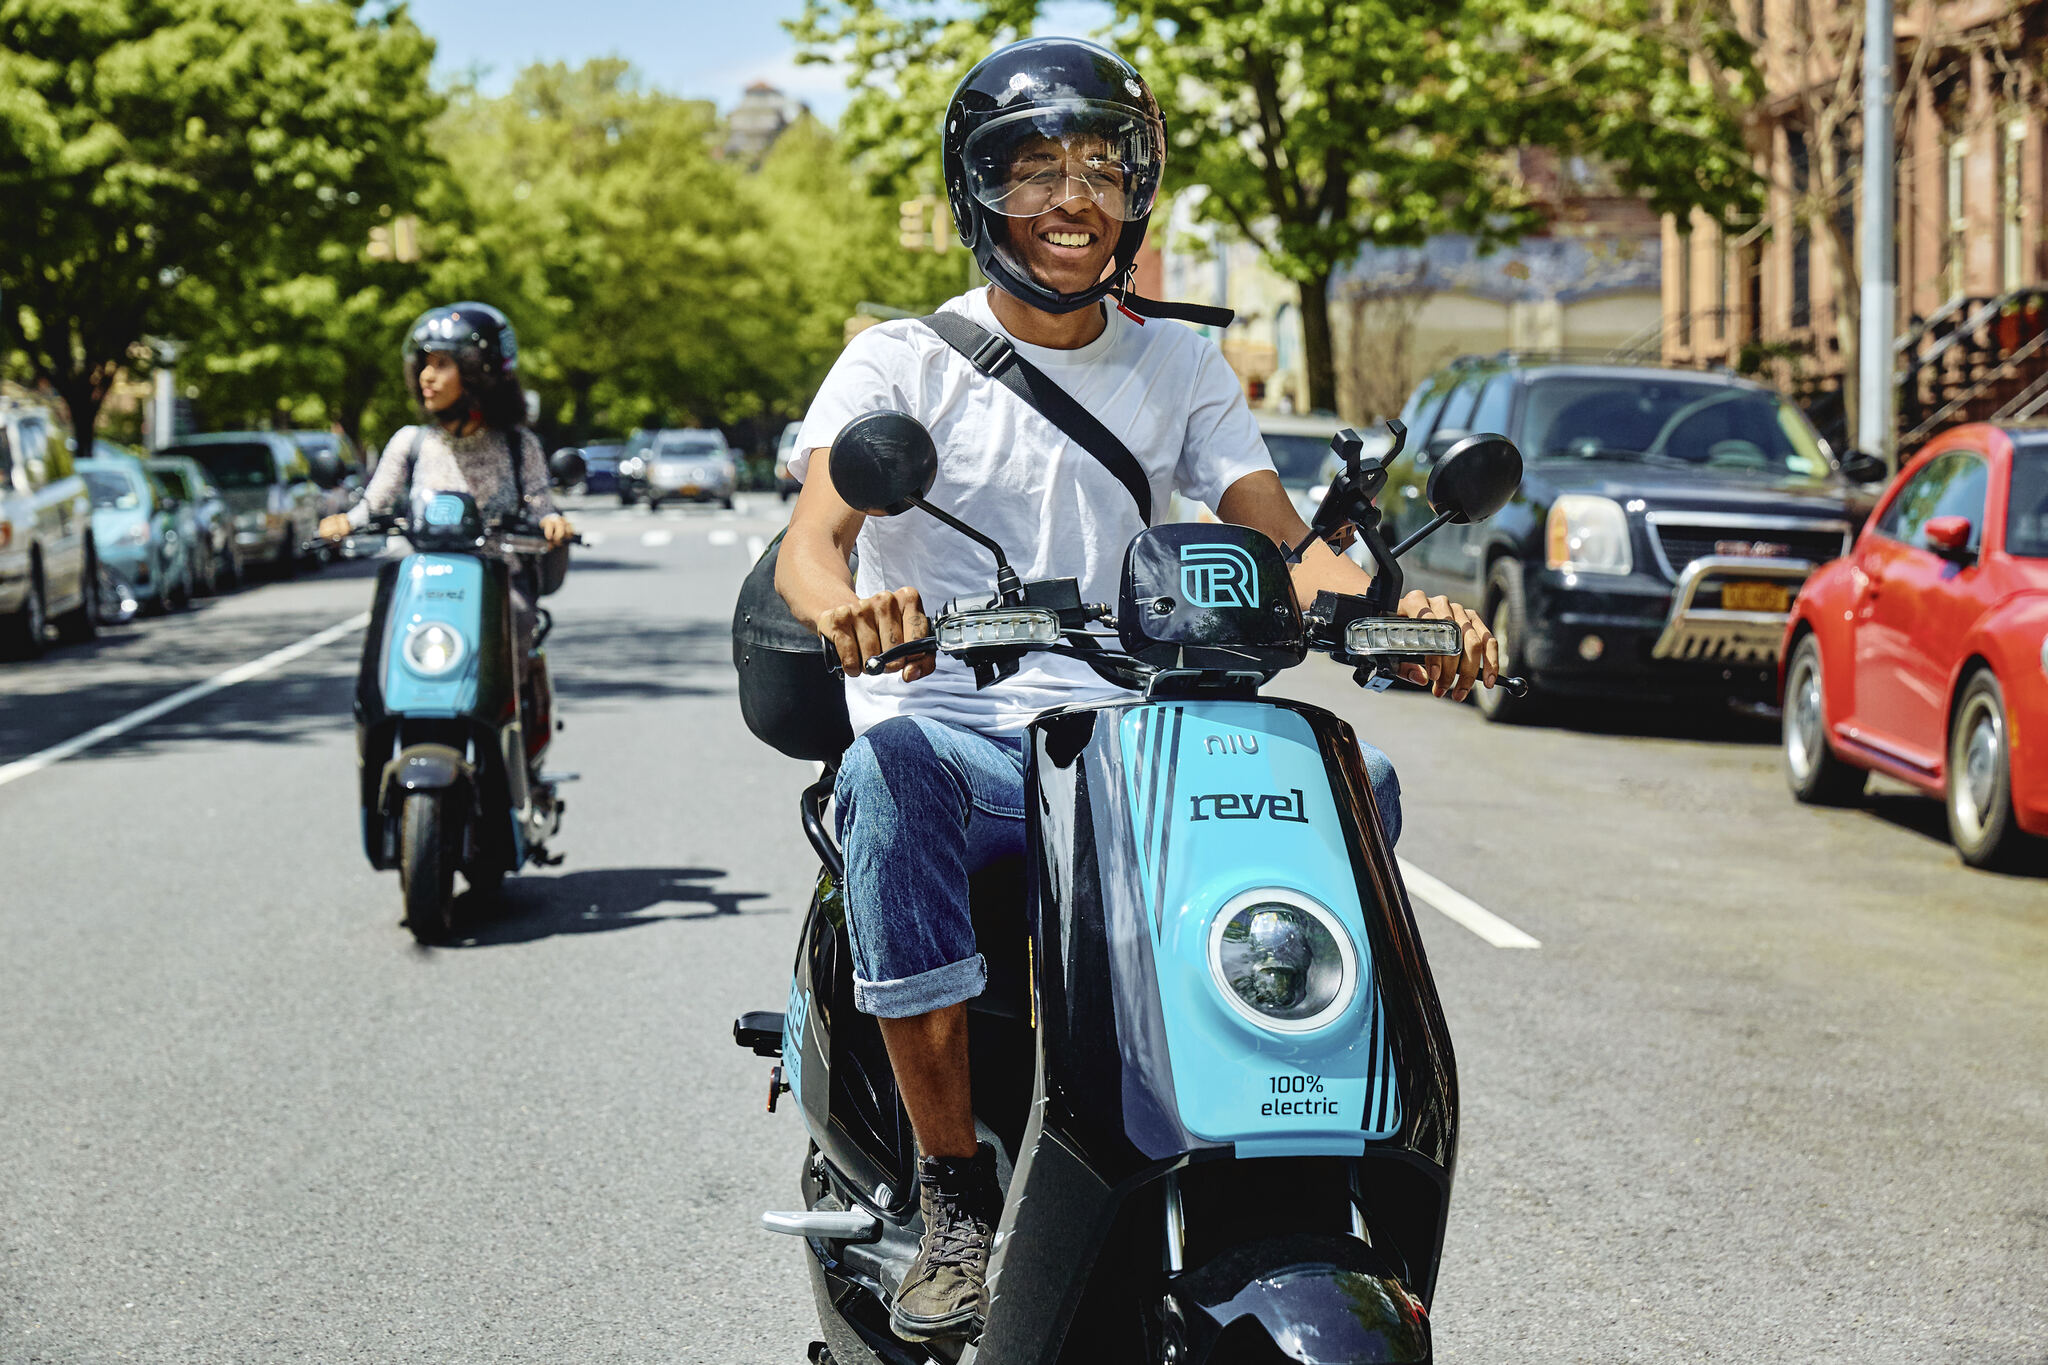 Deal would bring 750 shared electric mopeds to Miami